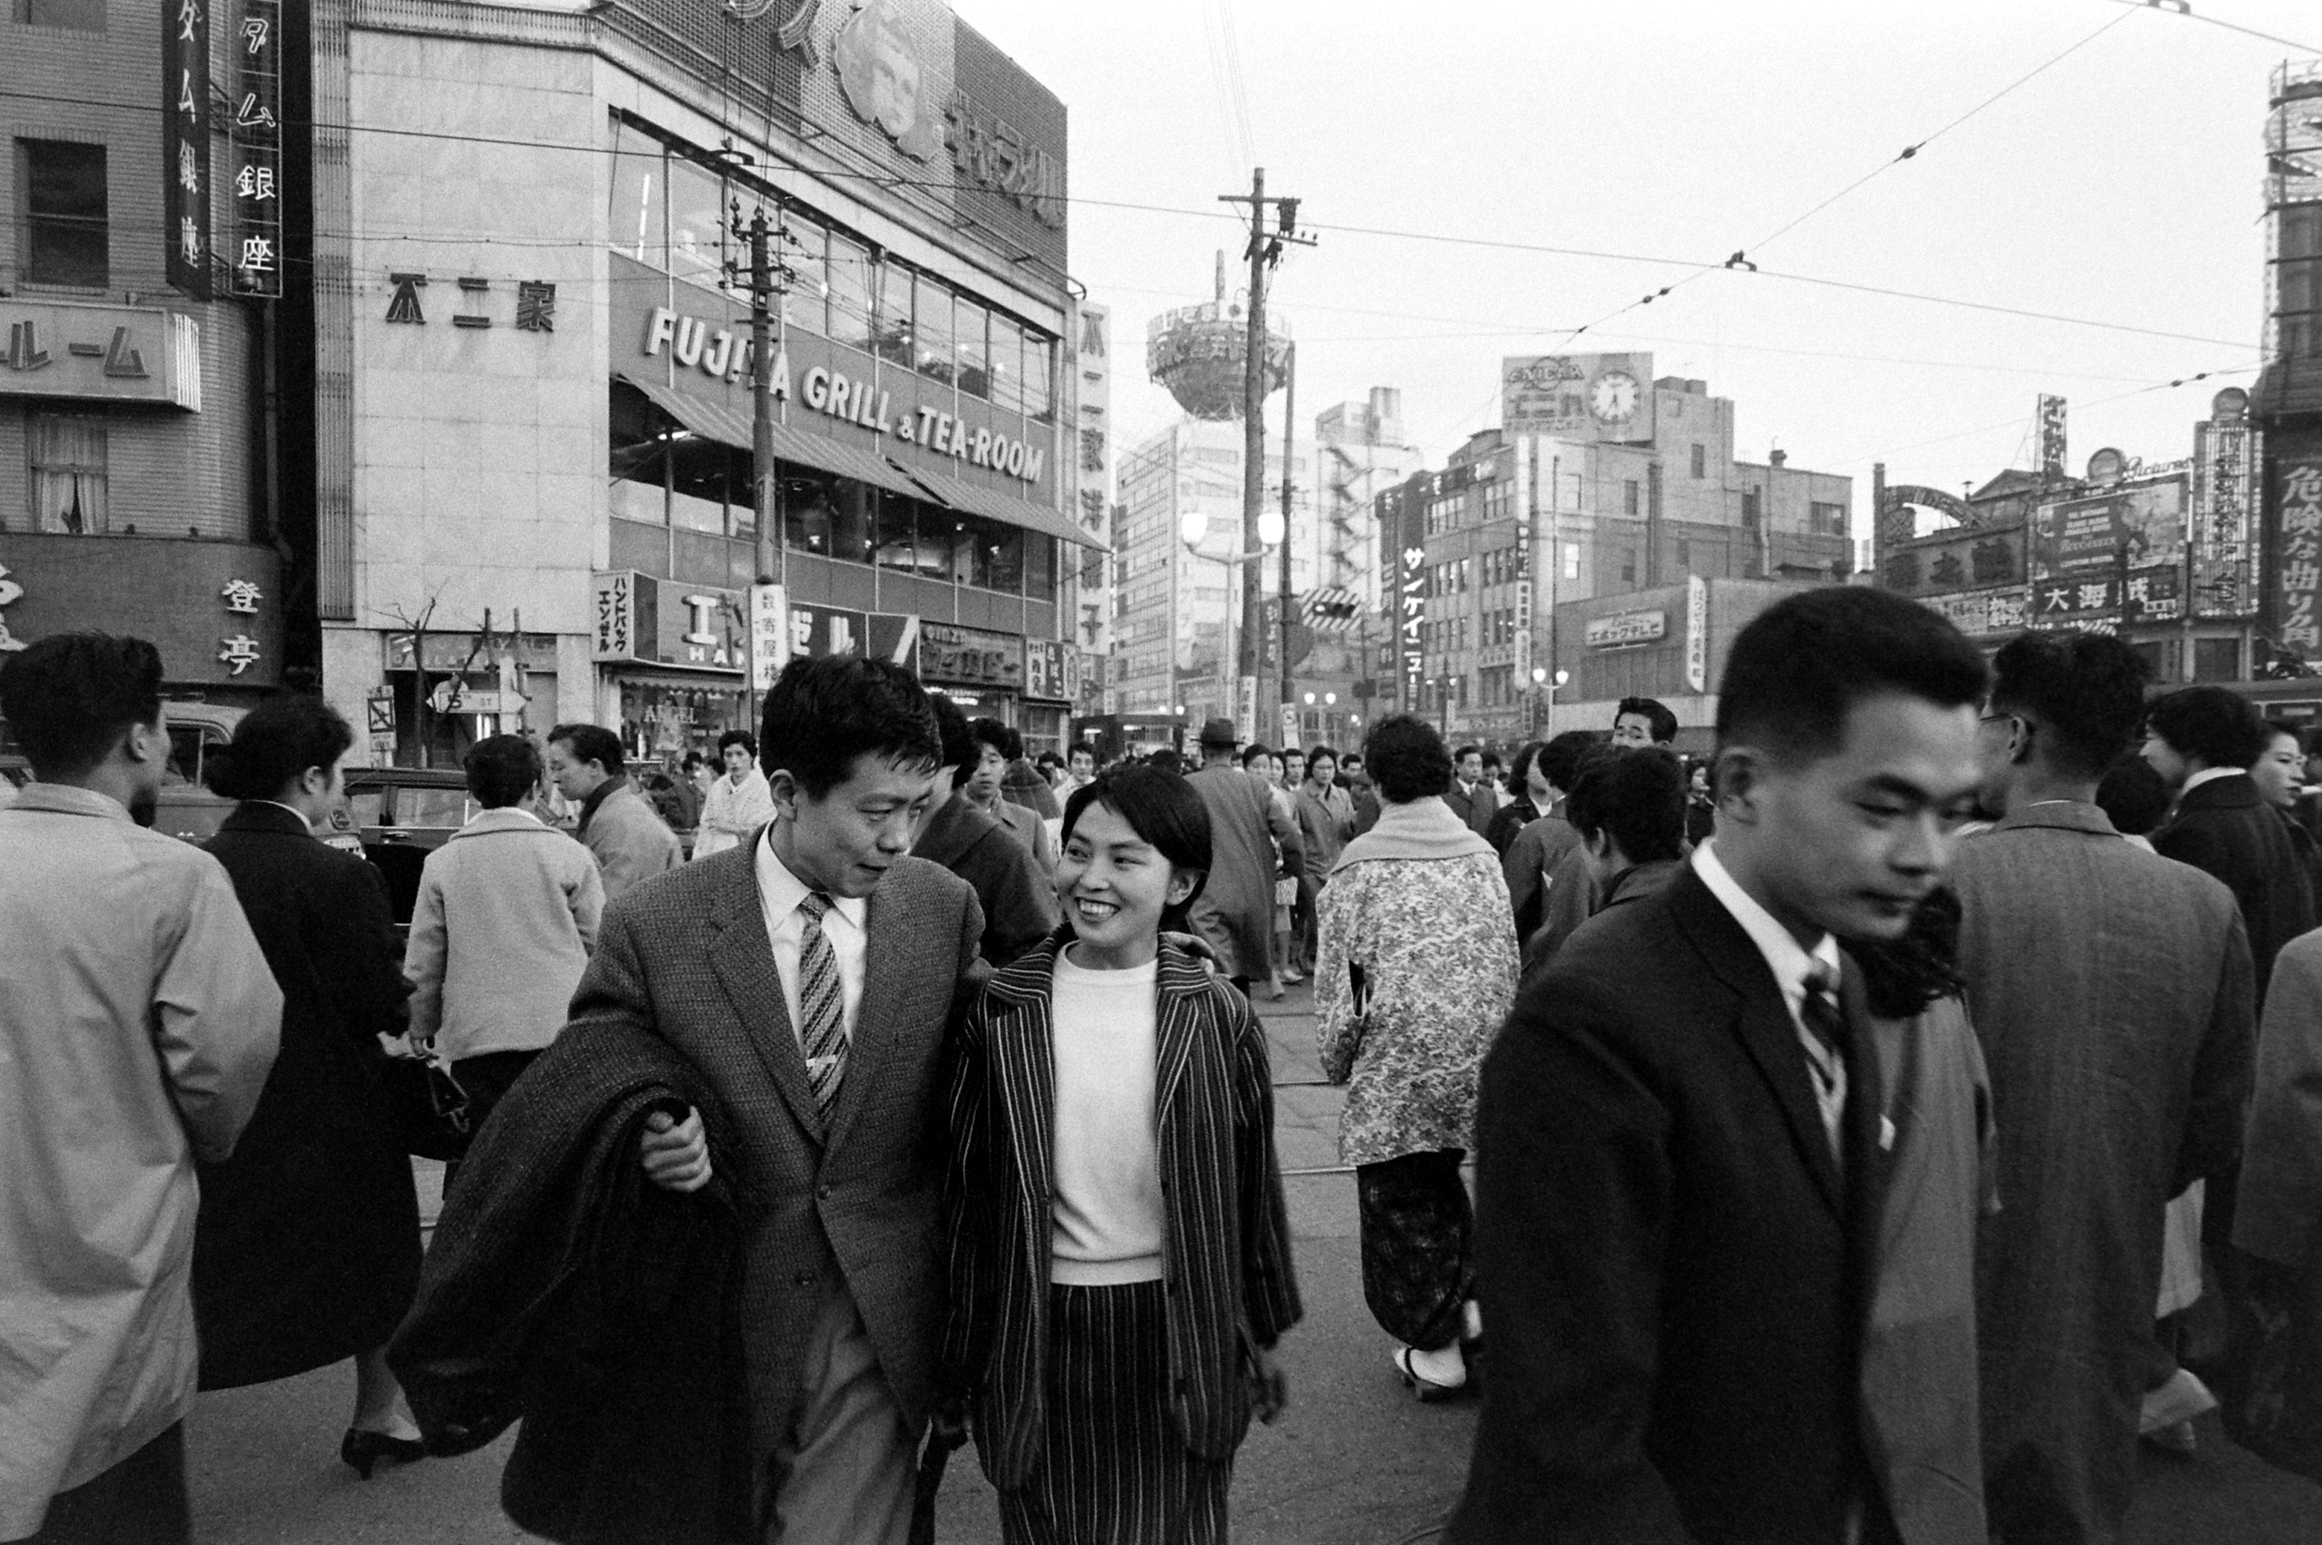 Akiksuke Tsutsui, left, and his girlfriend Chiyoko Inami, right, walking around in the Ginza district during their lunch hour.  March 1959.